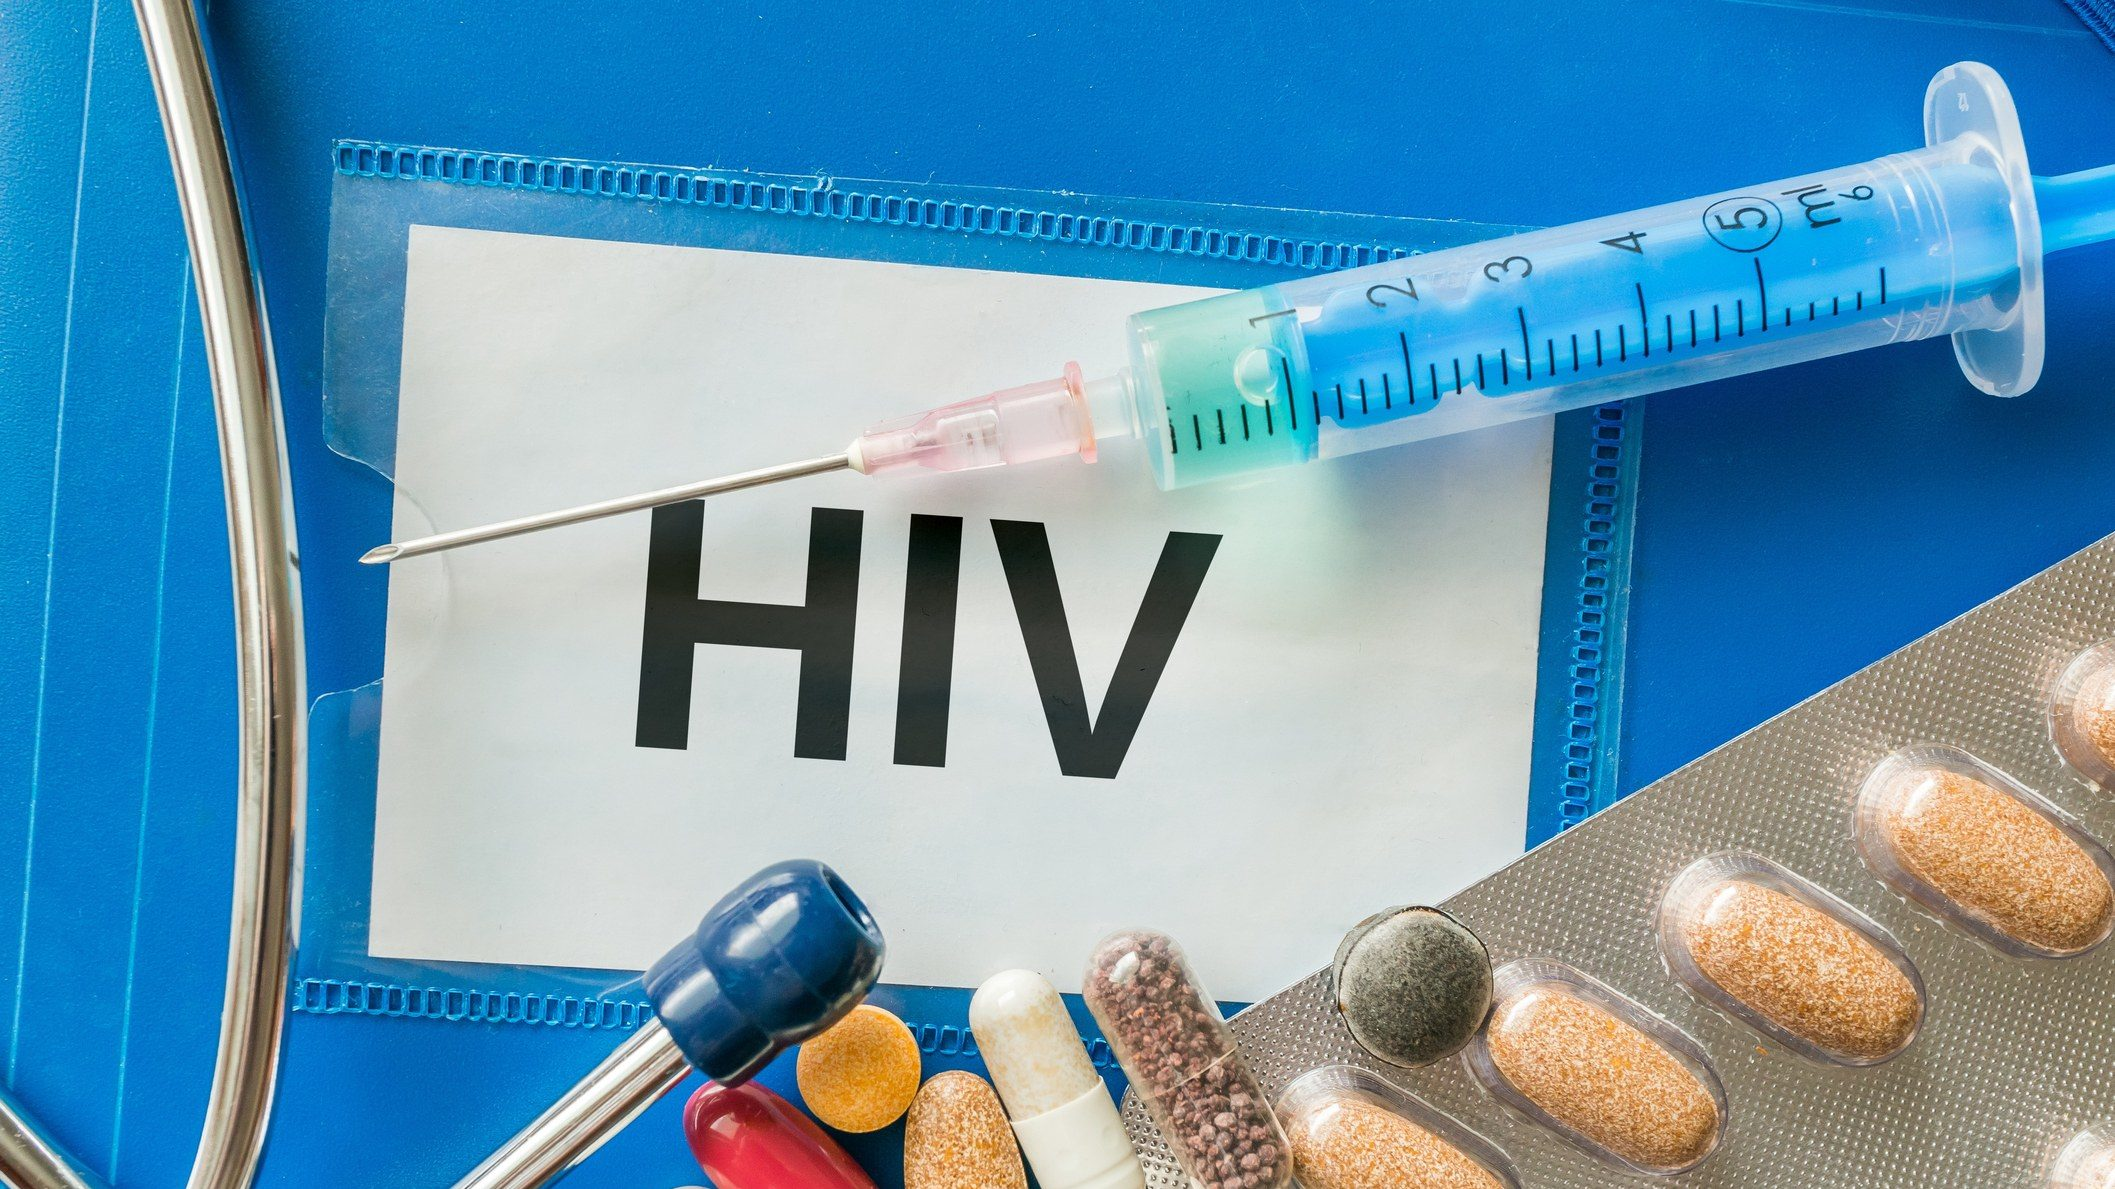 Brazil Patient becomes the first to get Cured of HIV